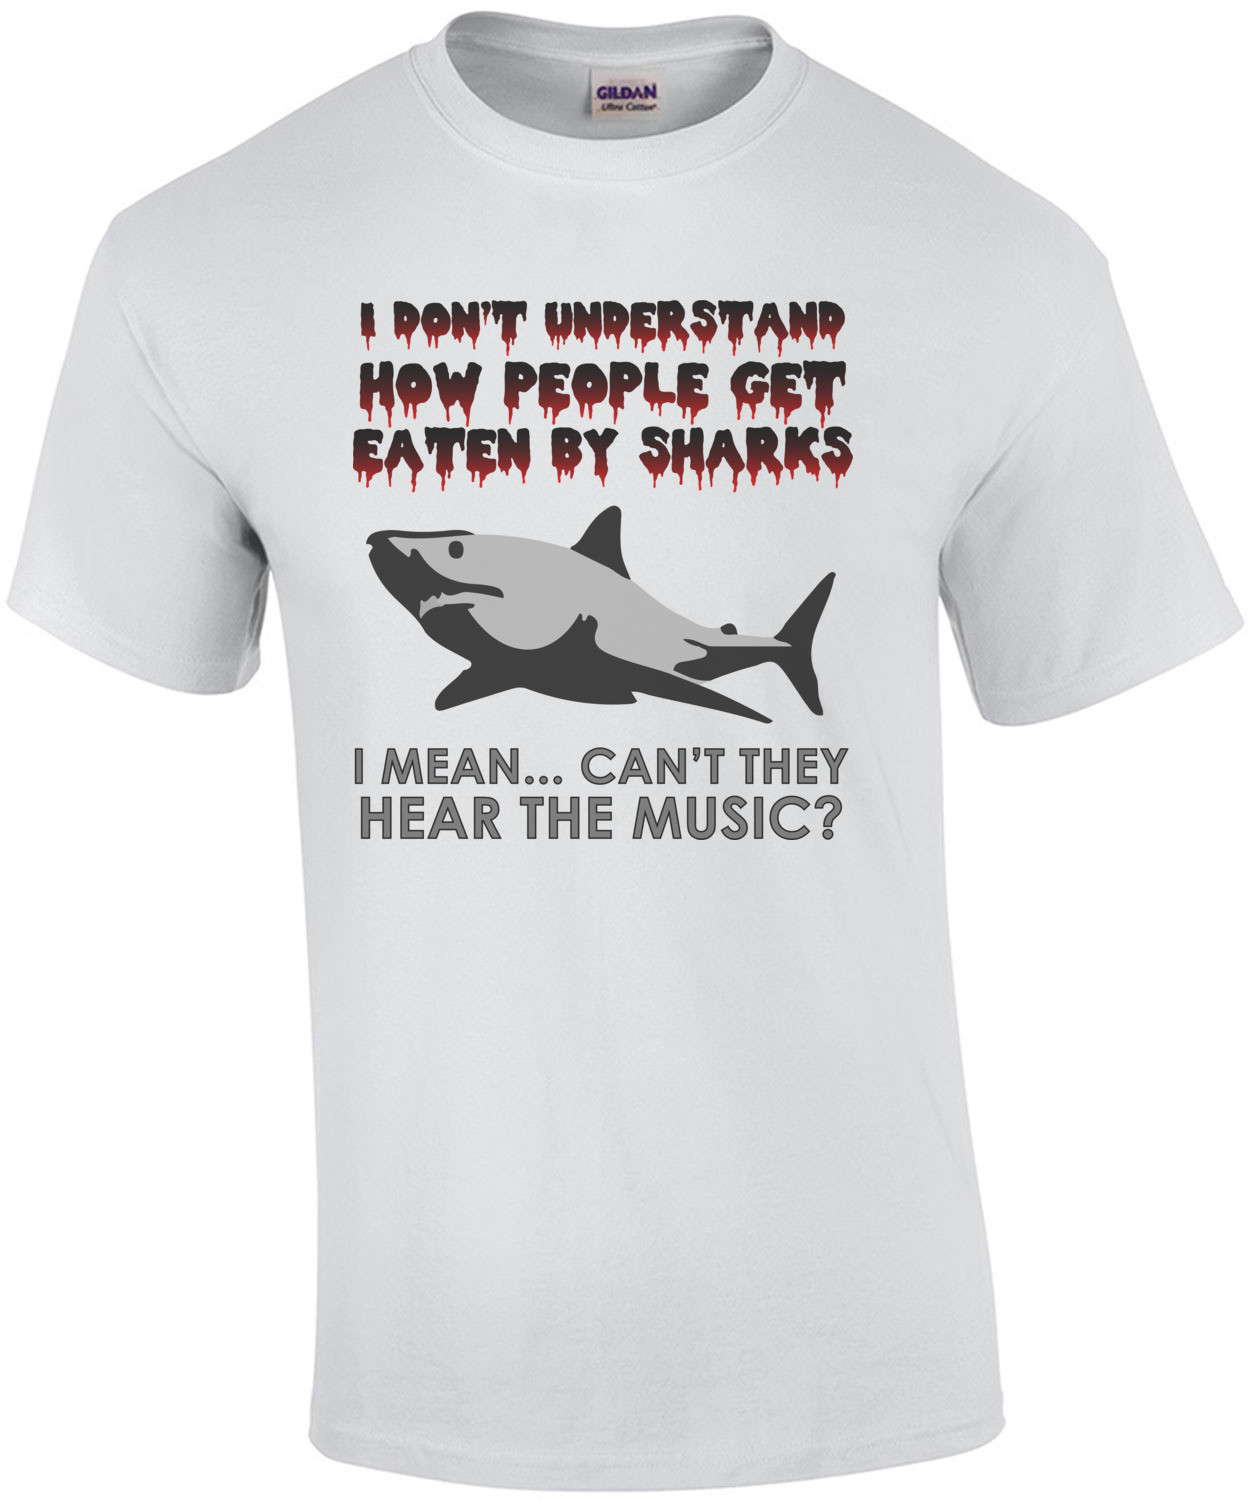 I don't understand how people get eaten by sharks - funny